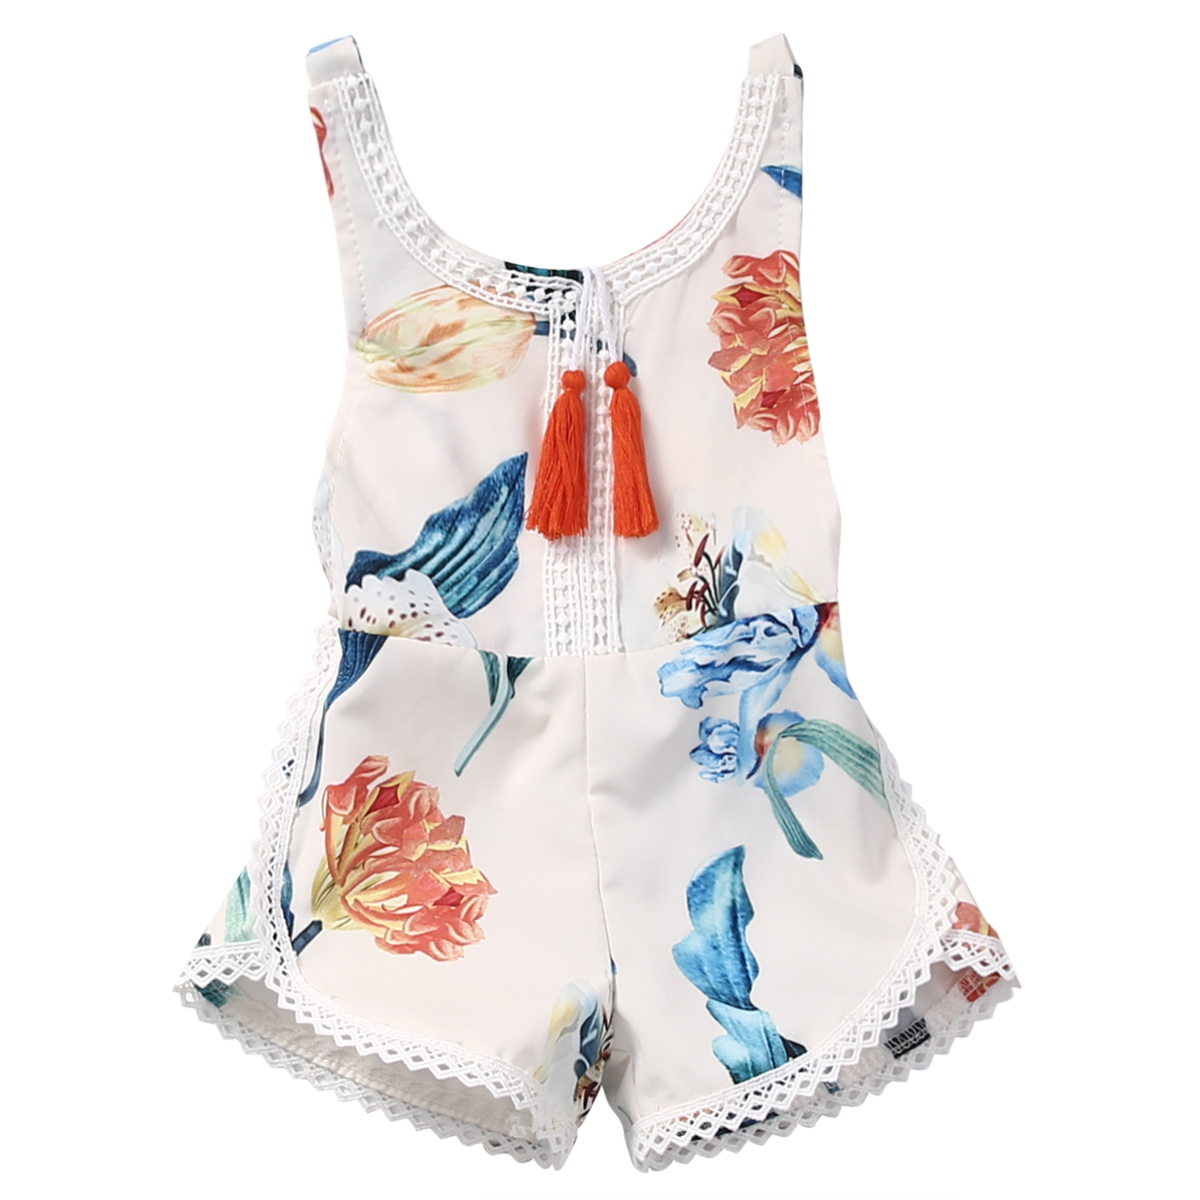 Pudcoco Kids Dungaree Shorts For Girls Summer Clothing Bib Overalls Jumpsuits Flower Print 0-4 Years